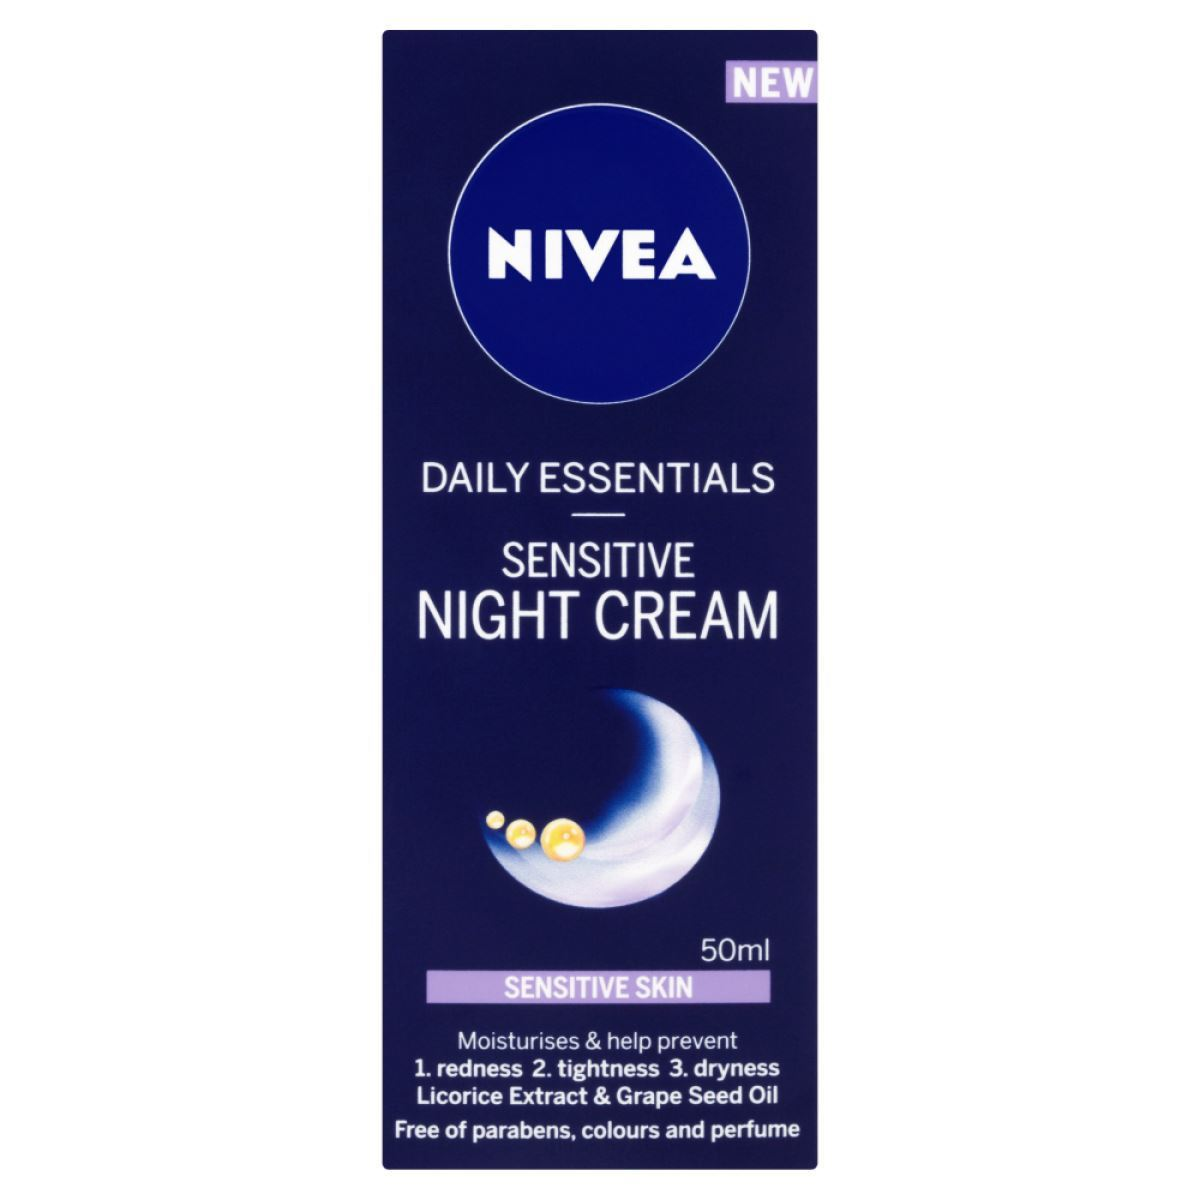 Nivea-Daily-Essentials-Sensitive-Night-Cream-50ml-1-2-3-6-12-Packs